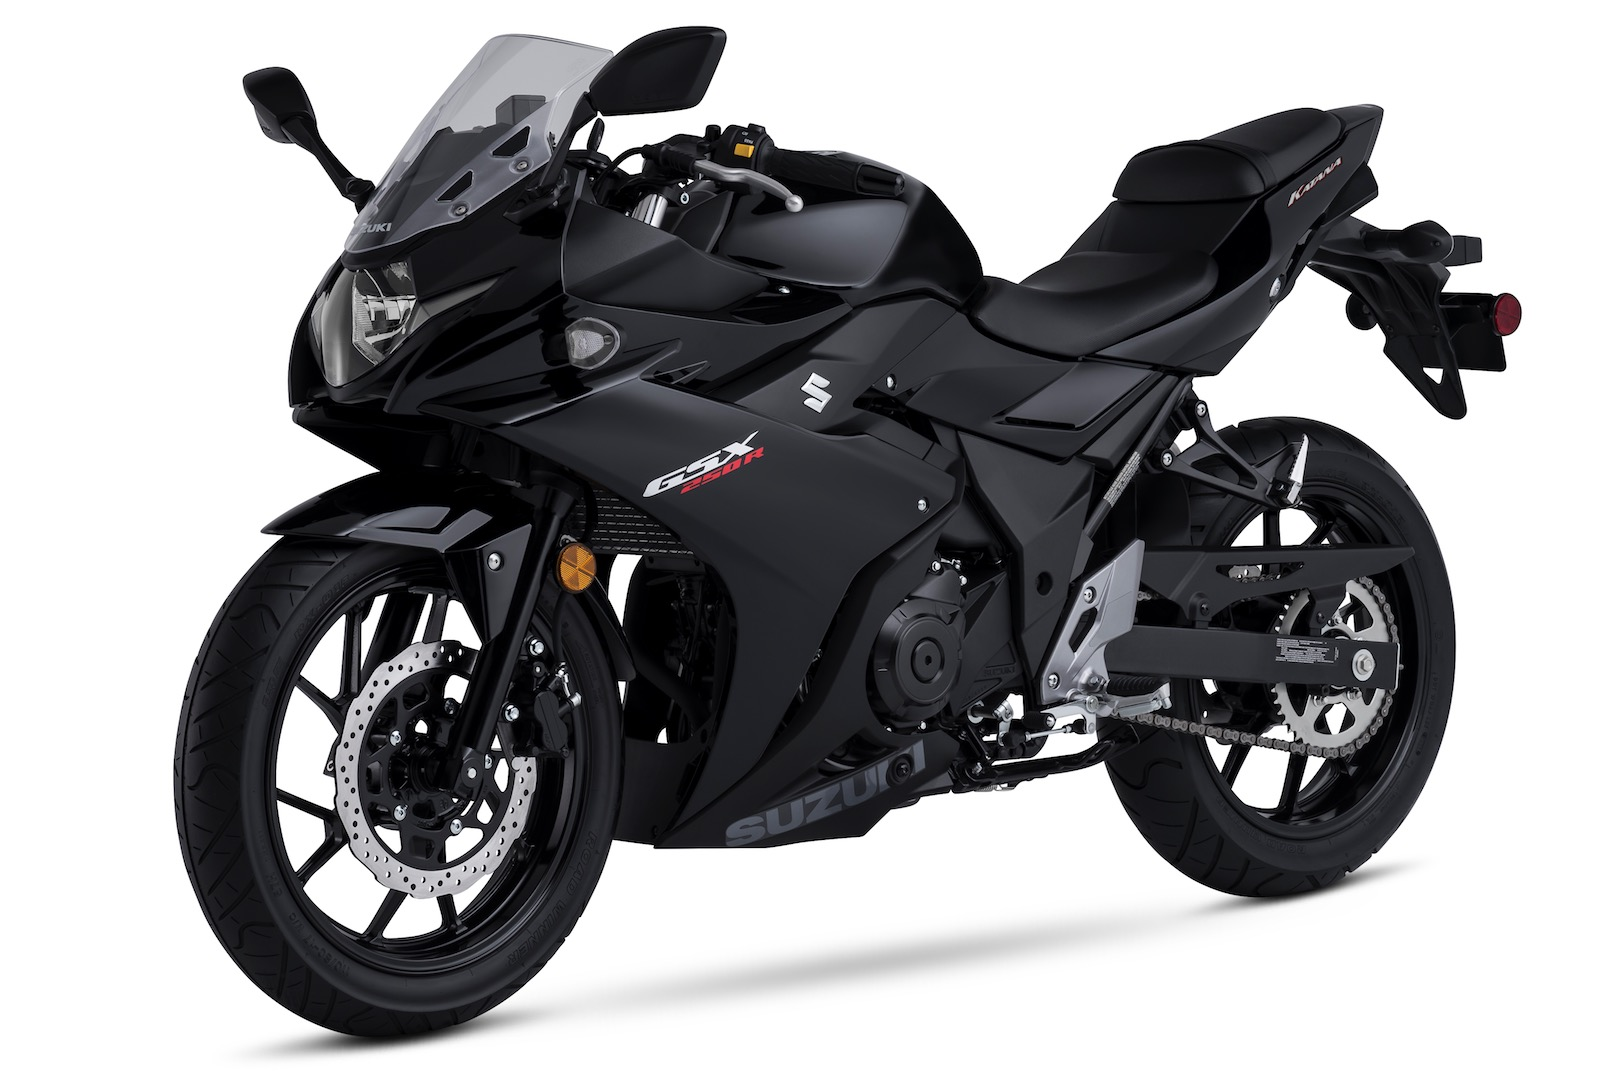 3d Yamaha Motorcycle Wallpaper 2018 Suzuki Gsx250r Katana Price And Colors Announced